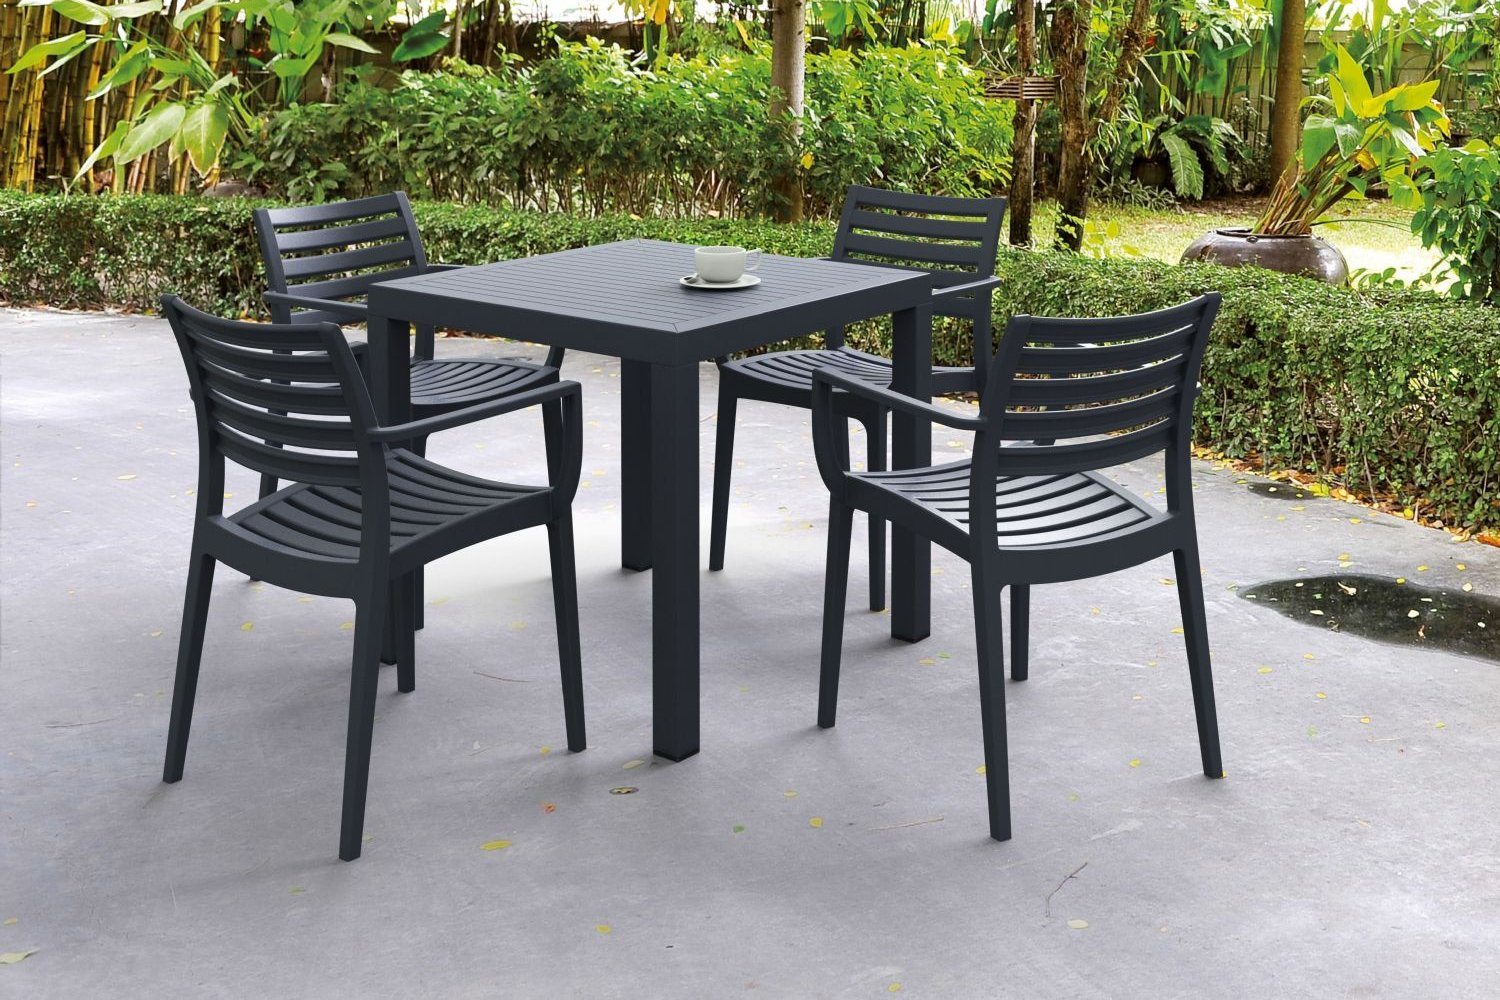 Artemis Resin Square Outdoor Dining Set 5 Piece with Arm Chairs ISP1642S - 2